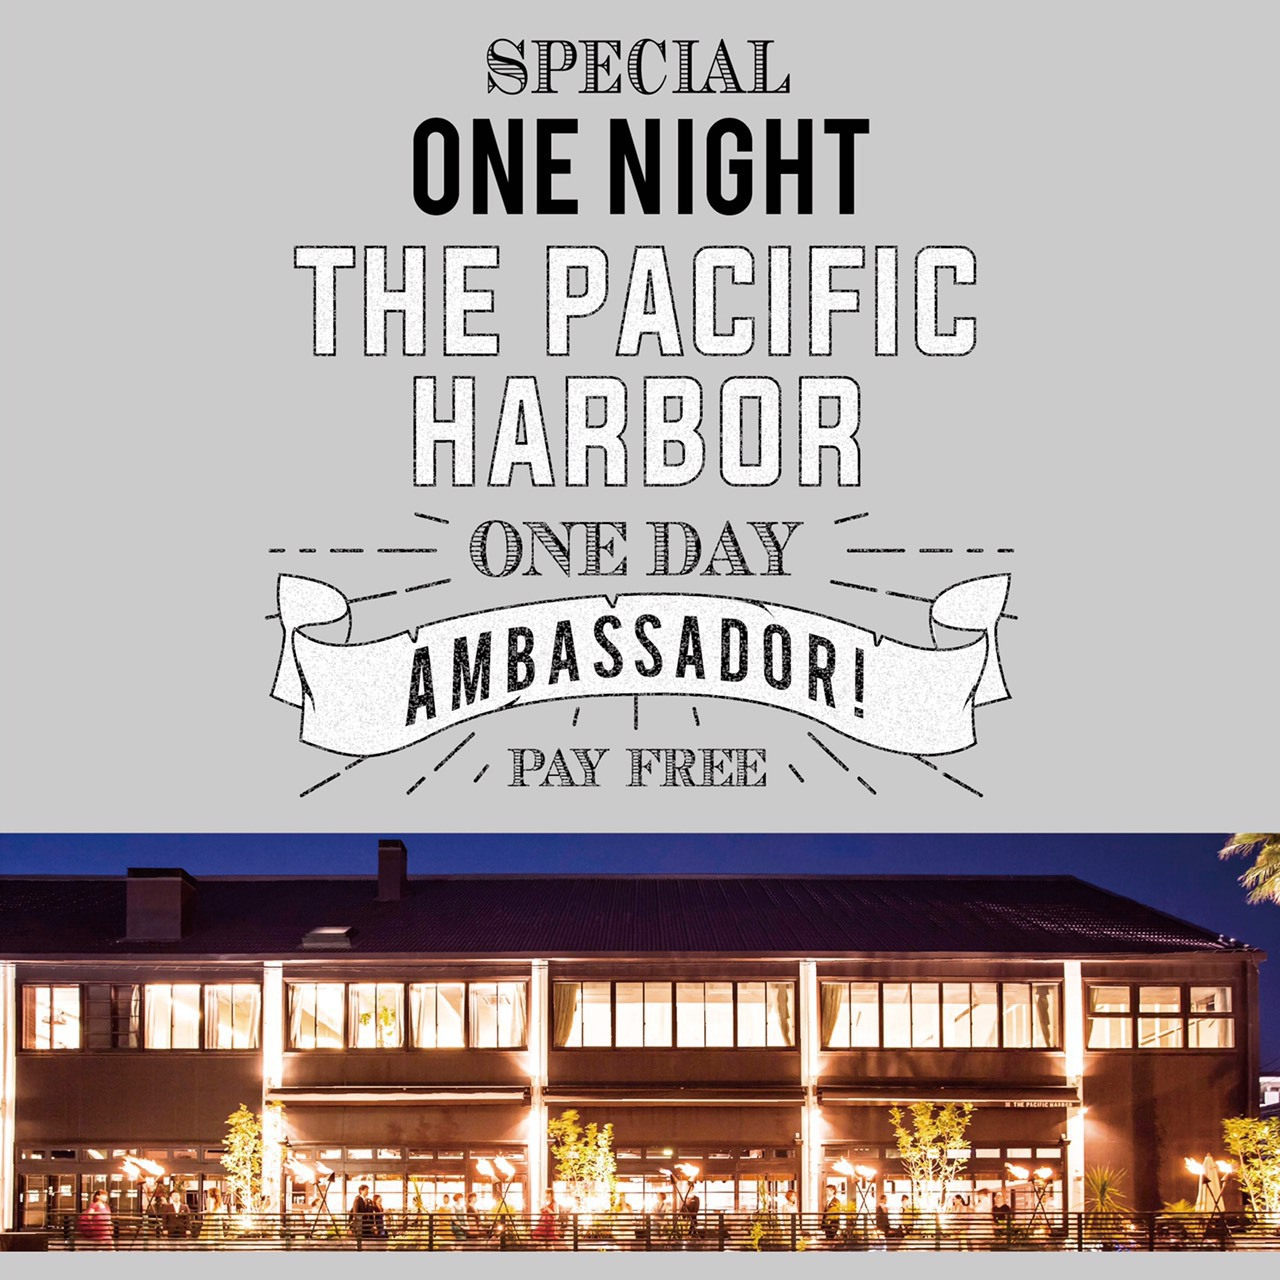 THE PACIFIC HARBOR ONE DAY AMBASSADOR !